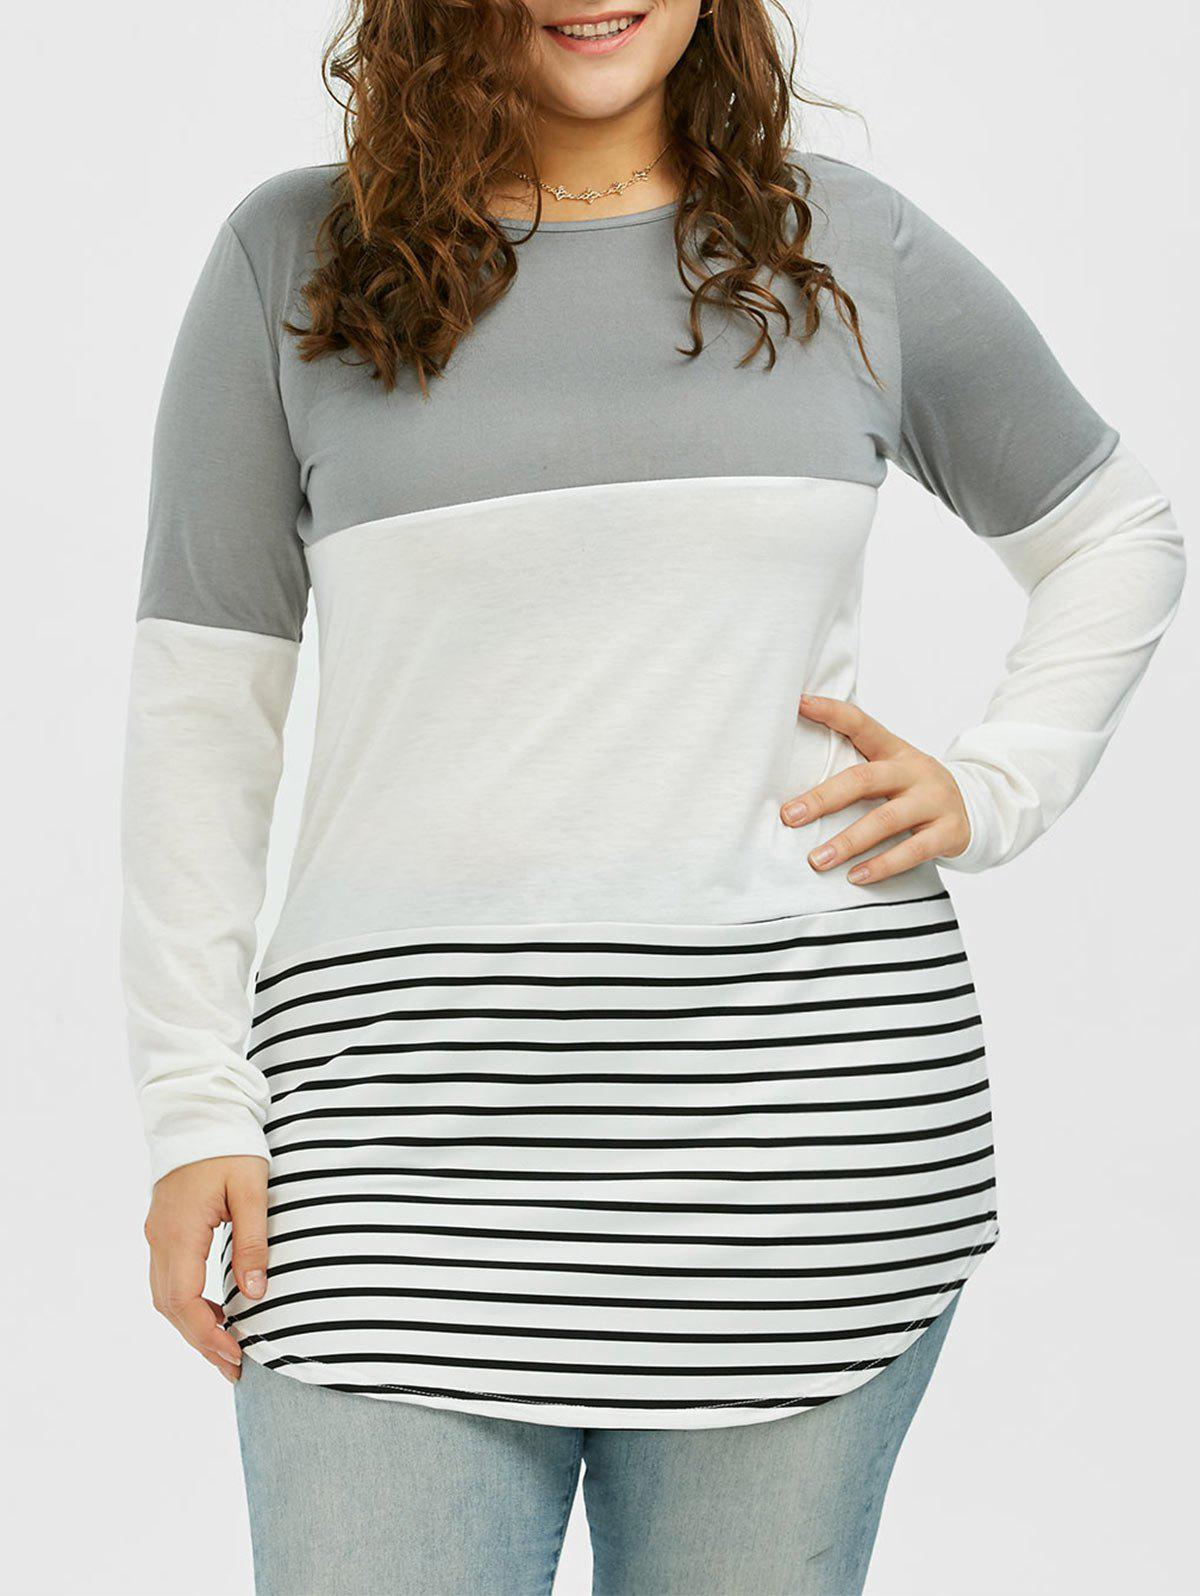 Color Block Stripe Plus Size TopWOMEN<br><br>Size: 5XL; Color: GRAY; Material: Polyester; Shirt Length: Long; Sleeve Length: Short; Collar: Round Neck; Style: Casual; Season: Summer; Pattern Type: Striped; Weight: 0.3500kg; Package Contents: 1 x Top;